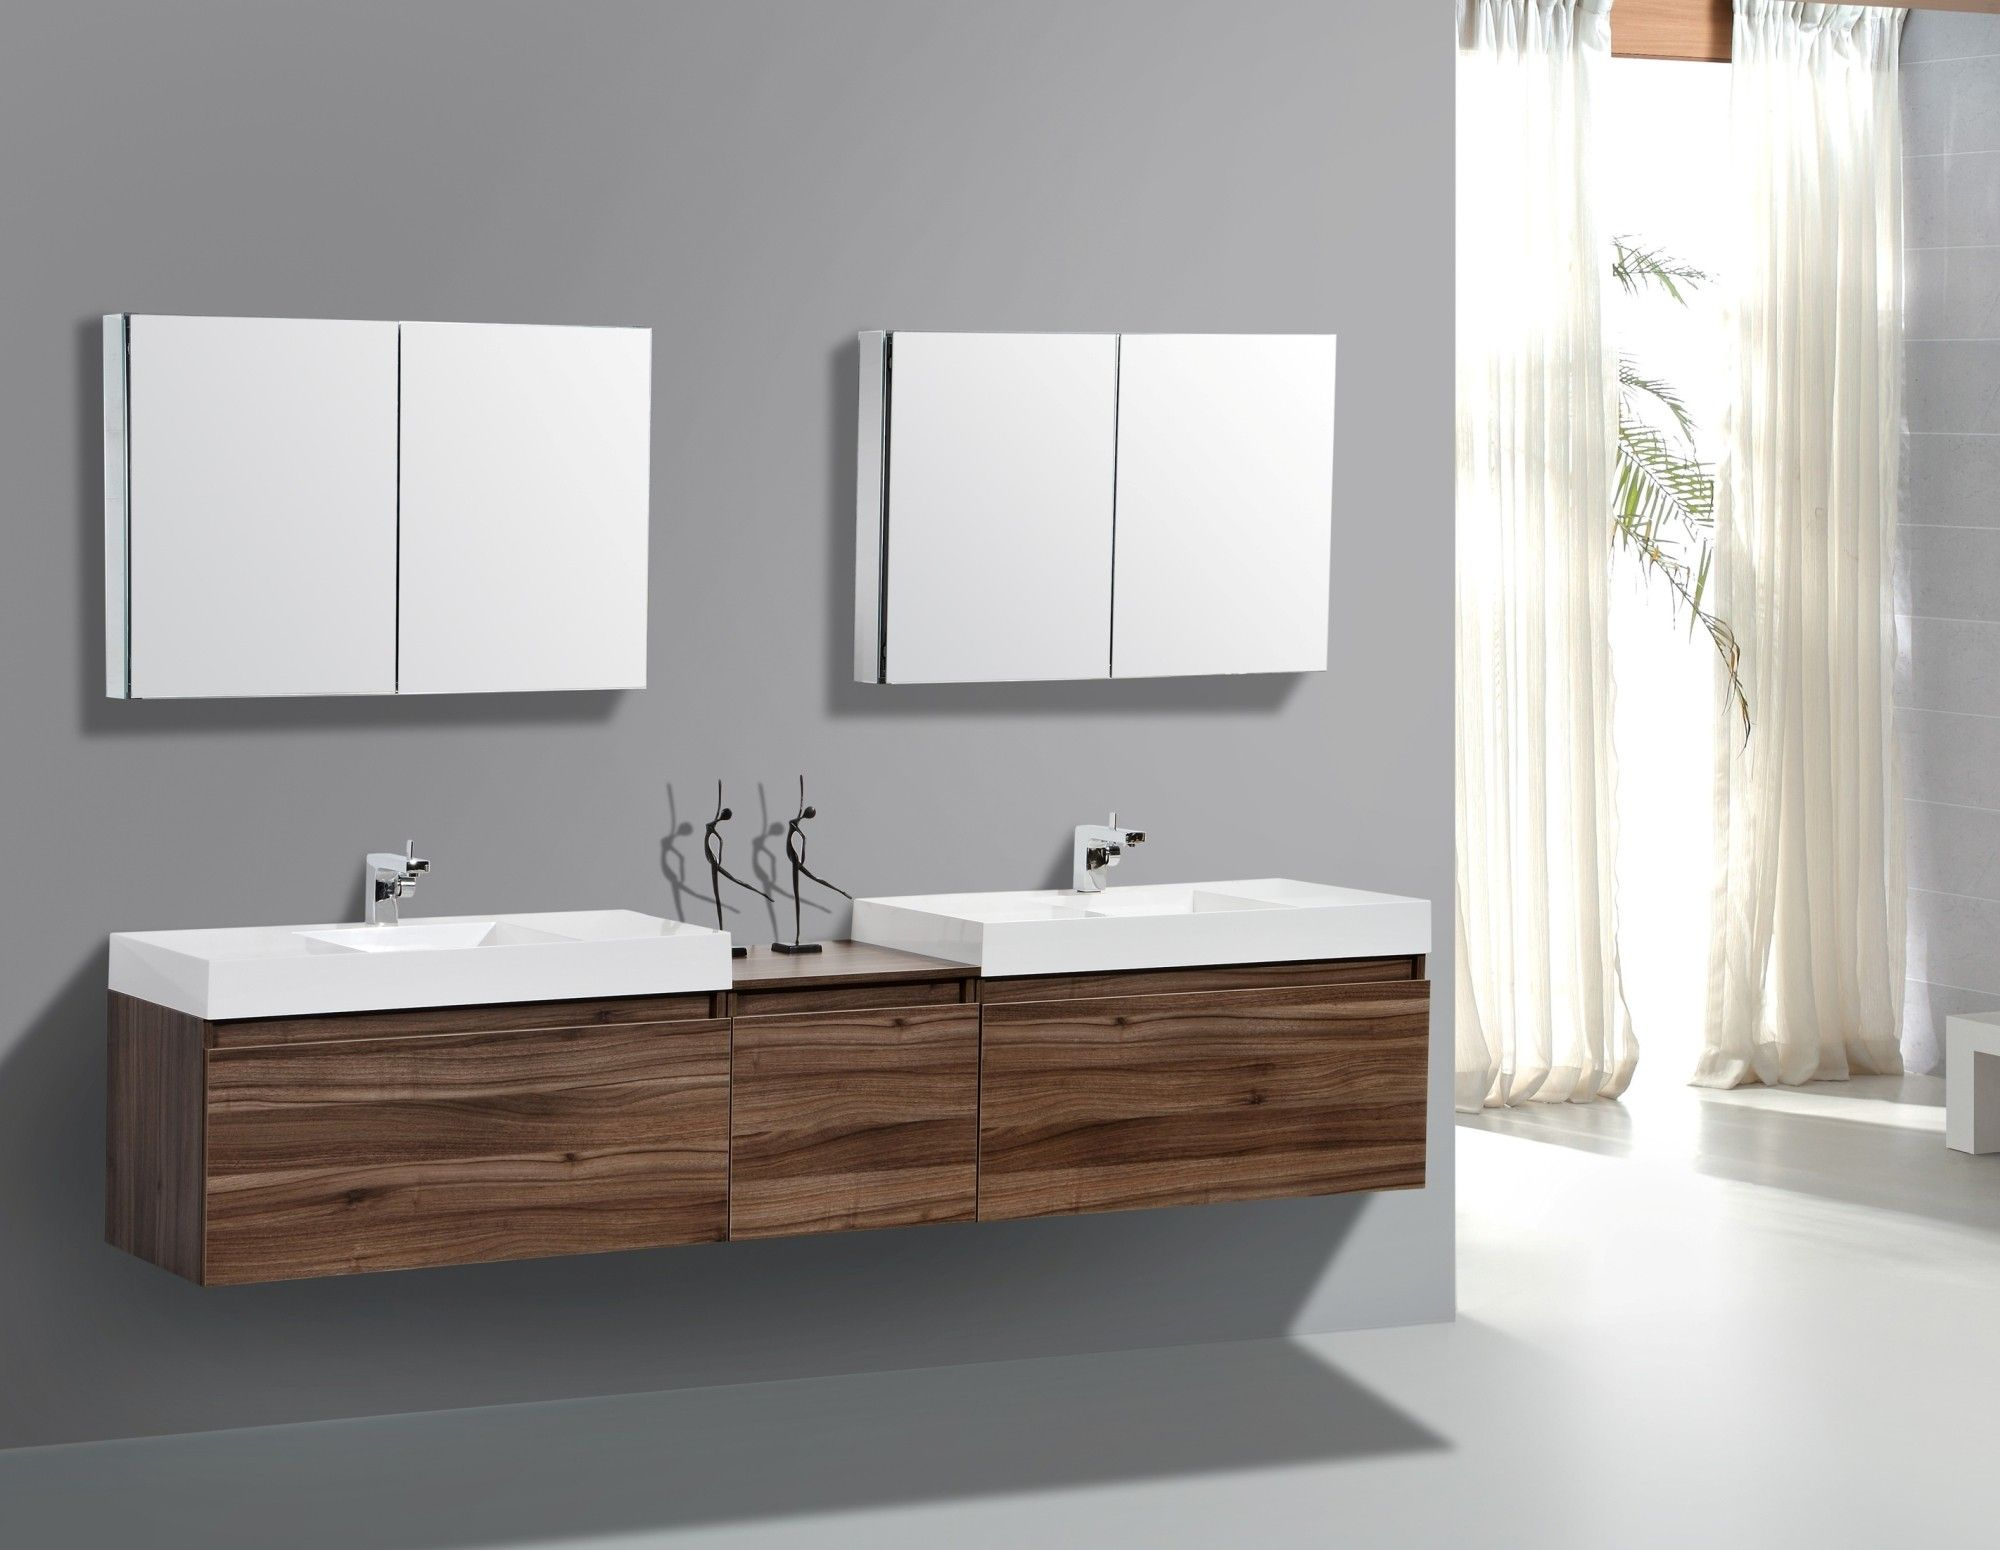 Upgrade Your Bathroom With Contemporary Bathroom Vanities Designalls In 2020 Bathroom Vanity Designs Floating Bathroom Vanities Modern Bathroom